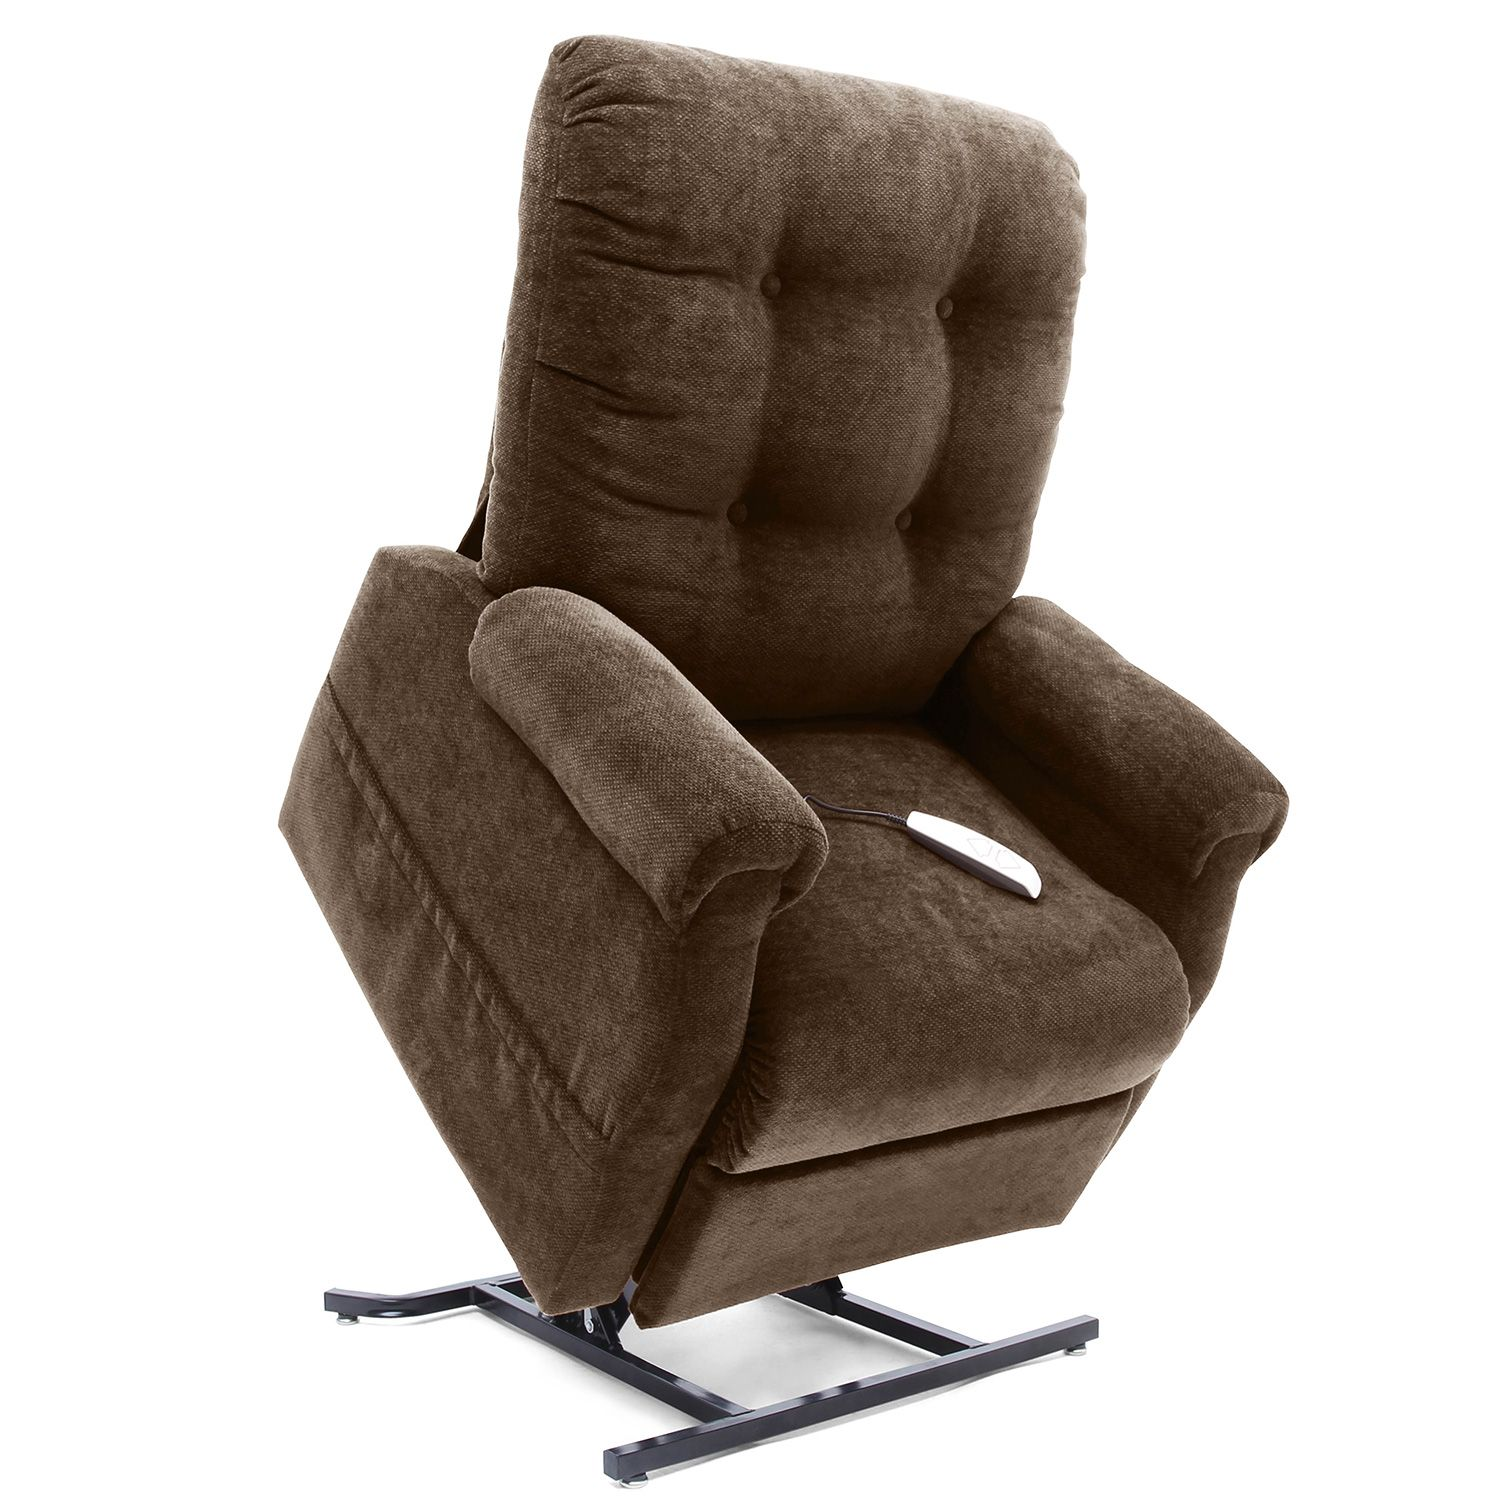 Michigan Power Lift Chair Recliner By Mega Motion Windermere Motion EBay